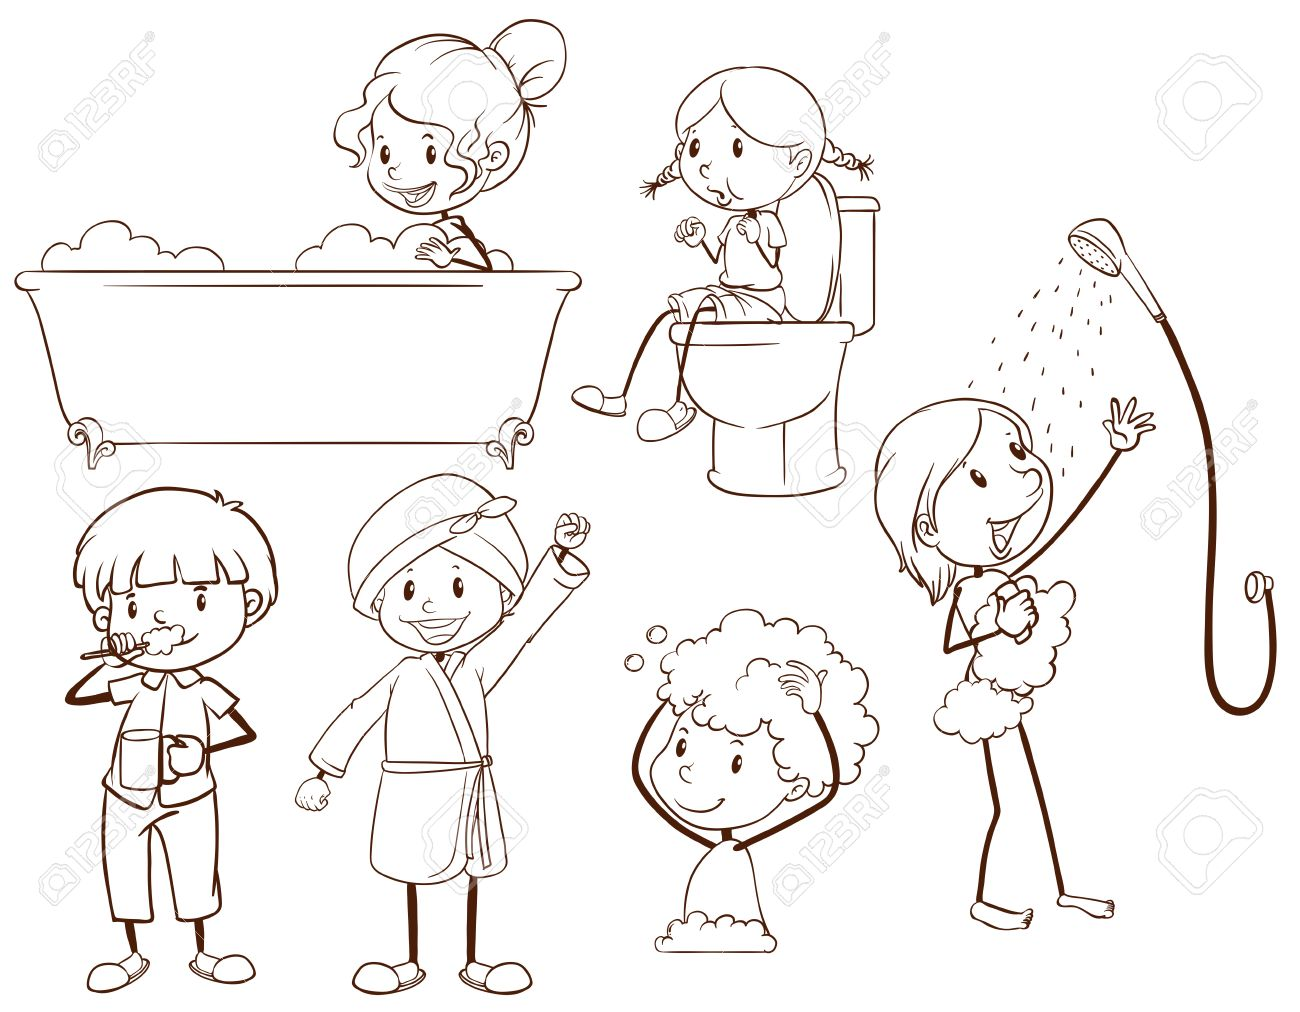 plain sketches of kids grooming on a white background stock vector 34013539 - Sketches For Kids